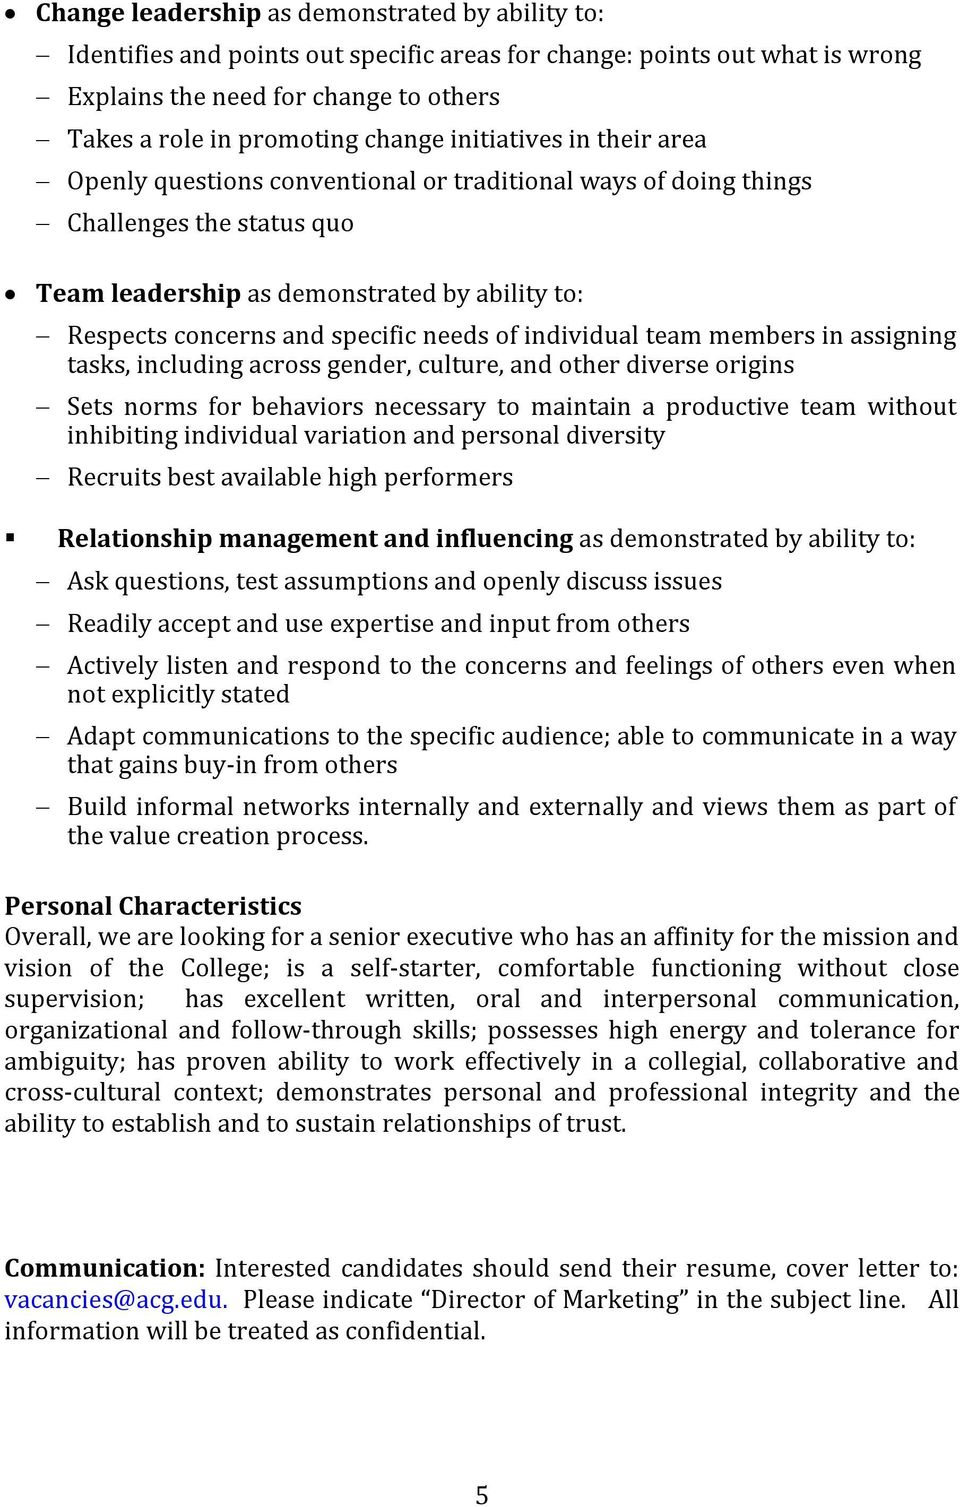 needs of individual team members in assigning tasks, including across gender, culture, and other diverse origins Sets norms for behaviors necessary to maintain a productive team without inhibiting